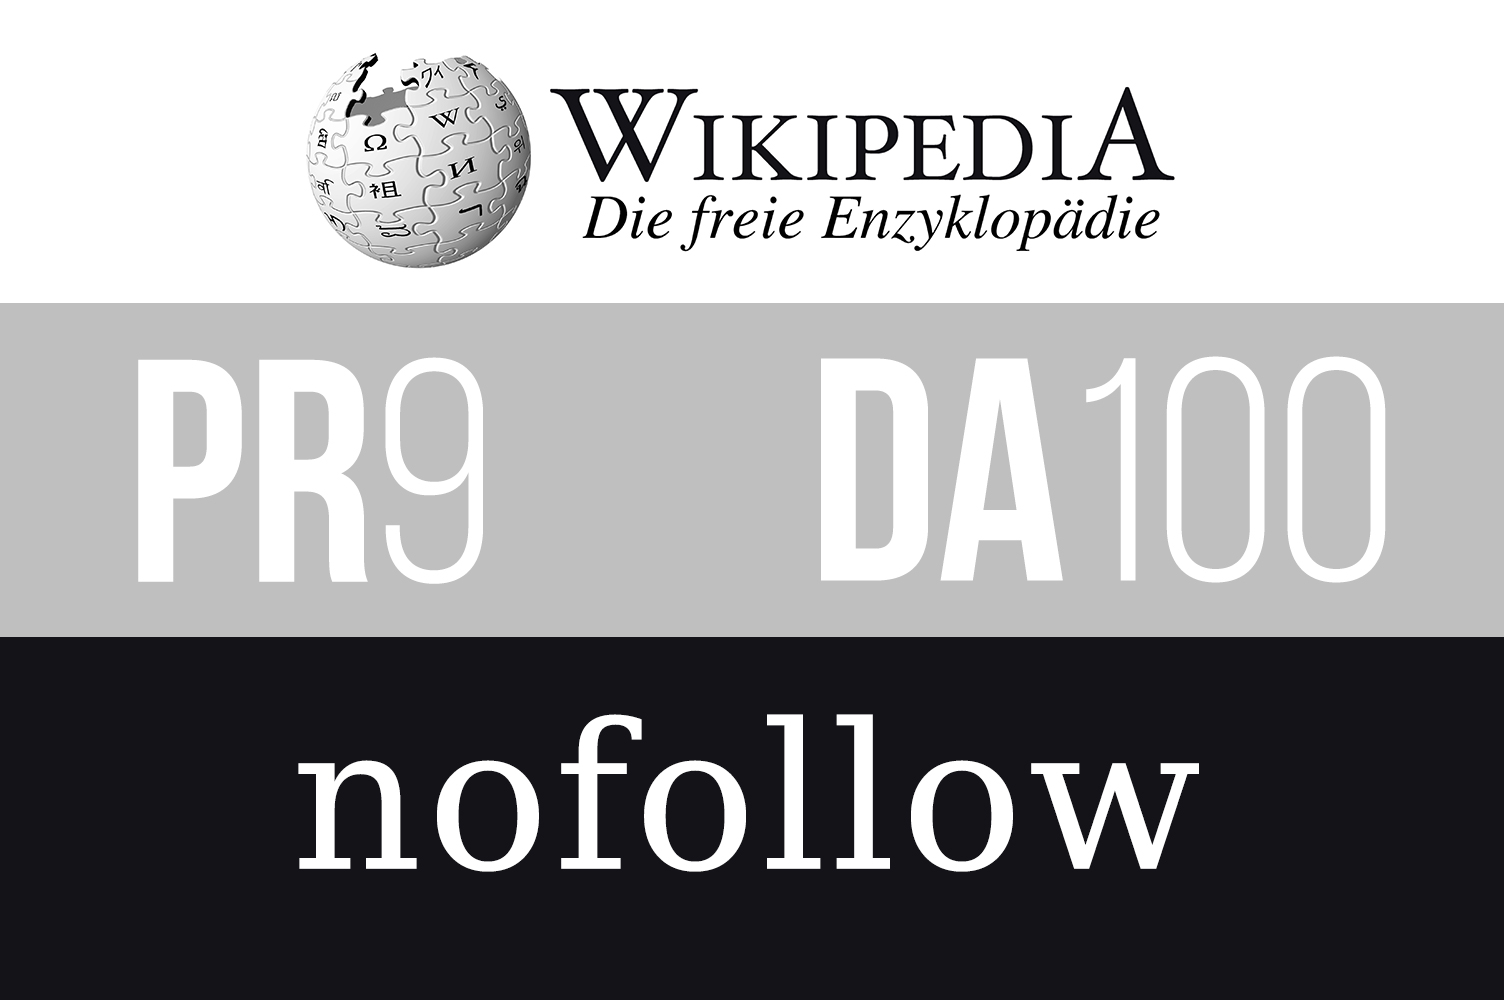 Offer backlink from Wikipedia to your website